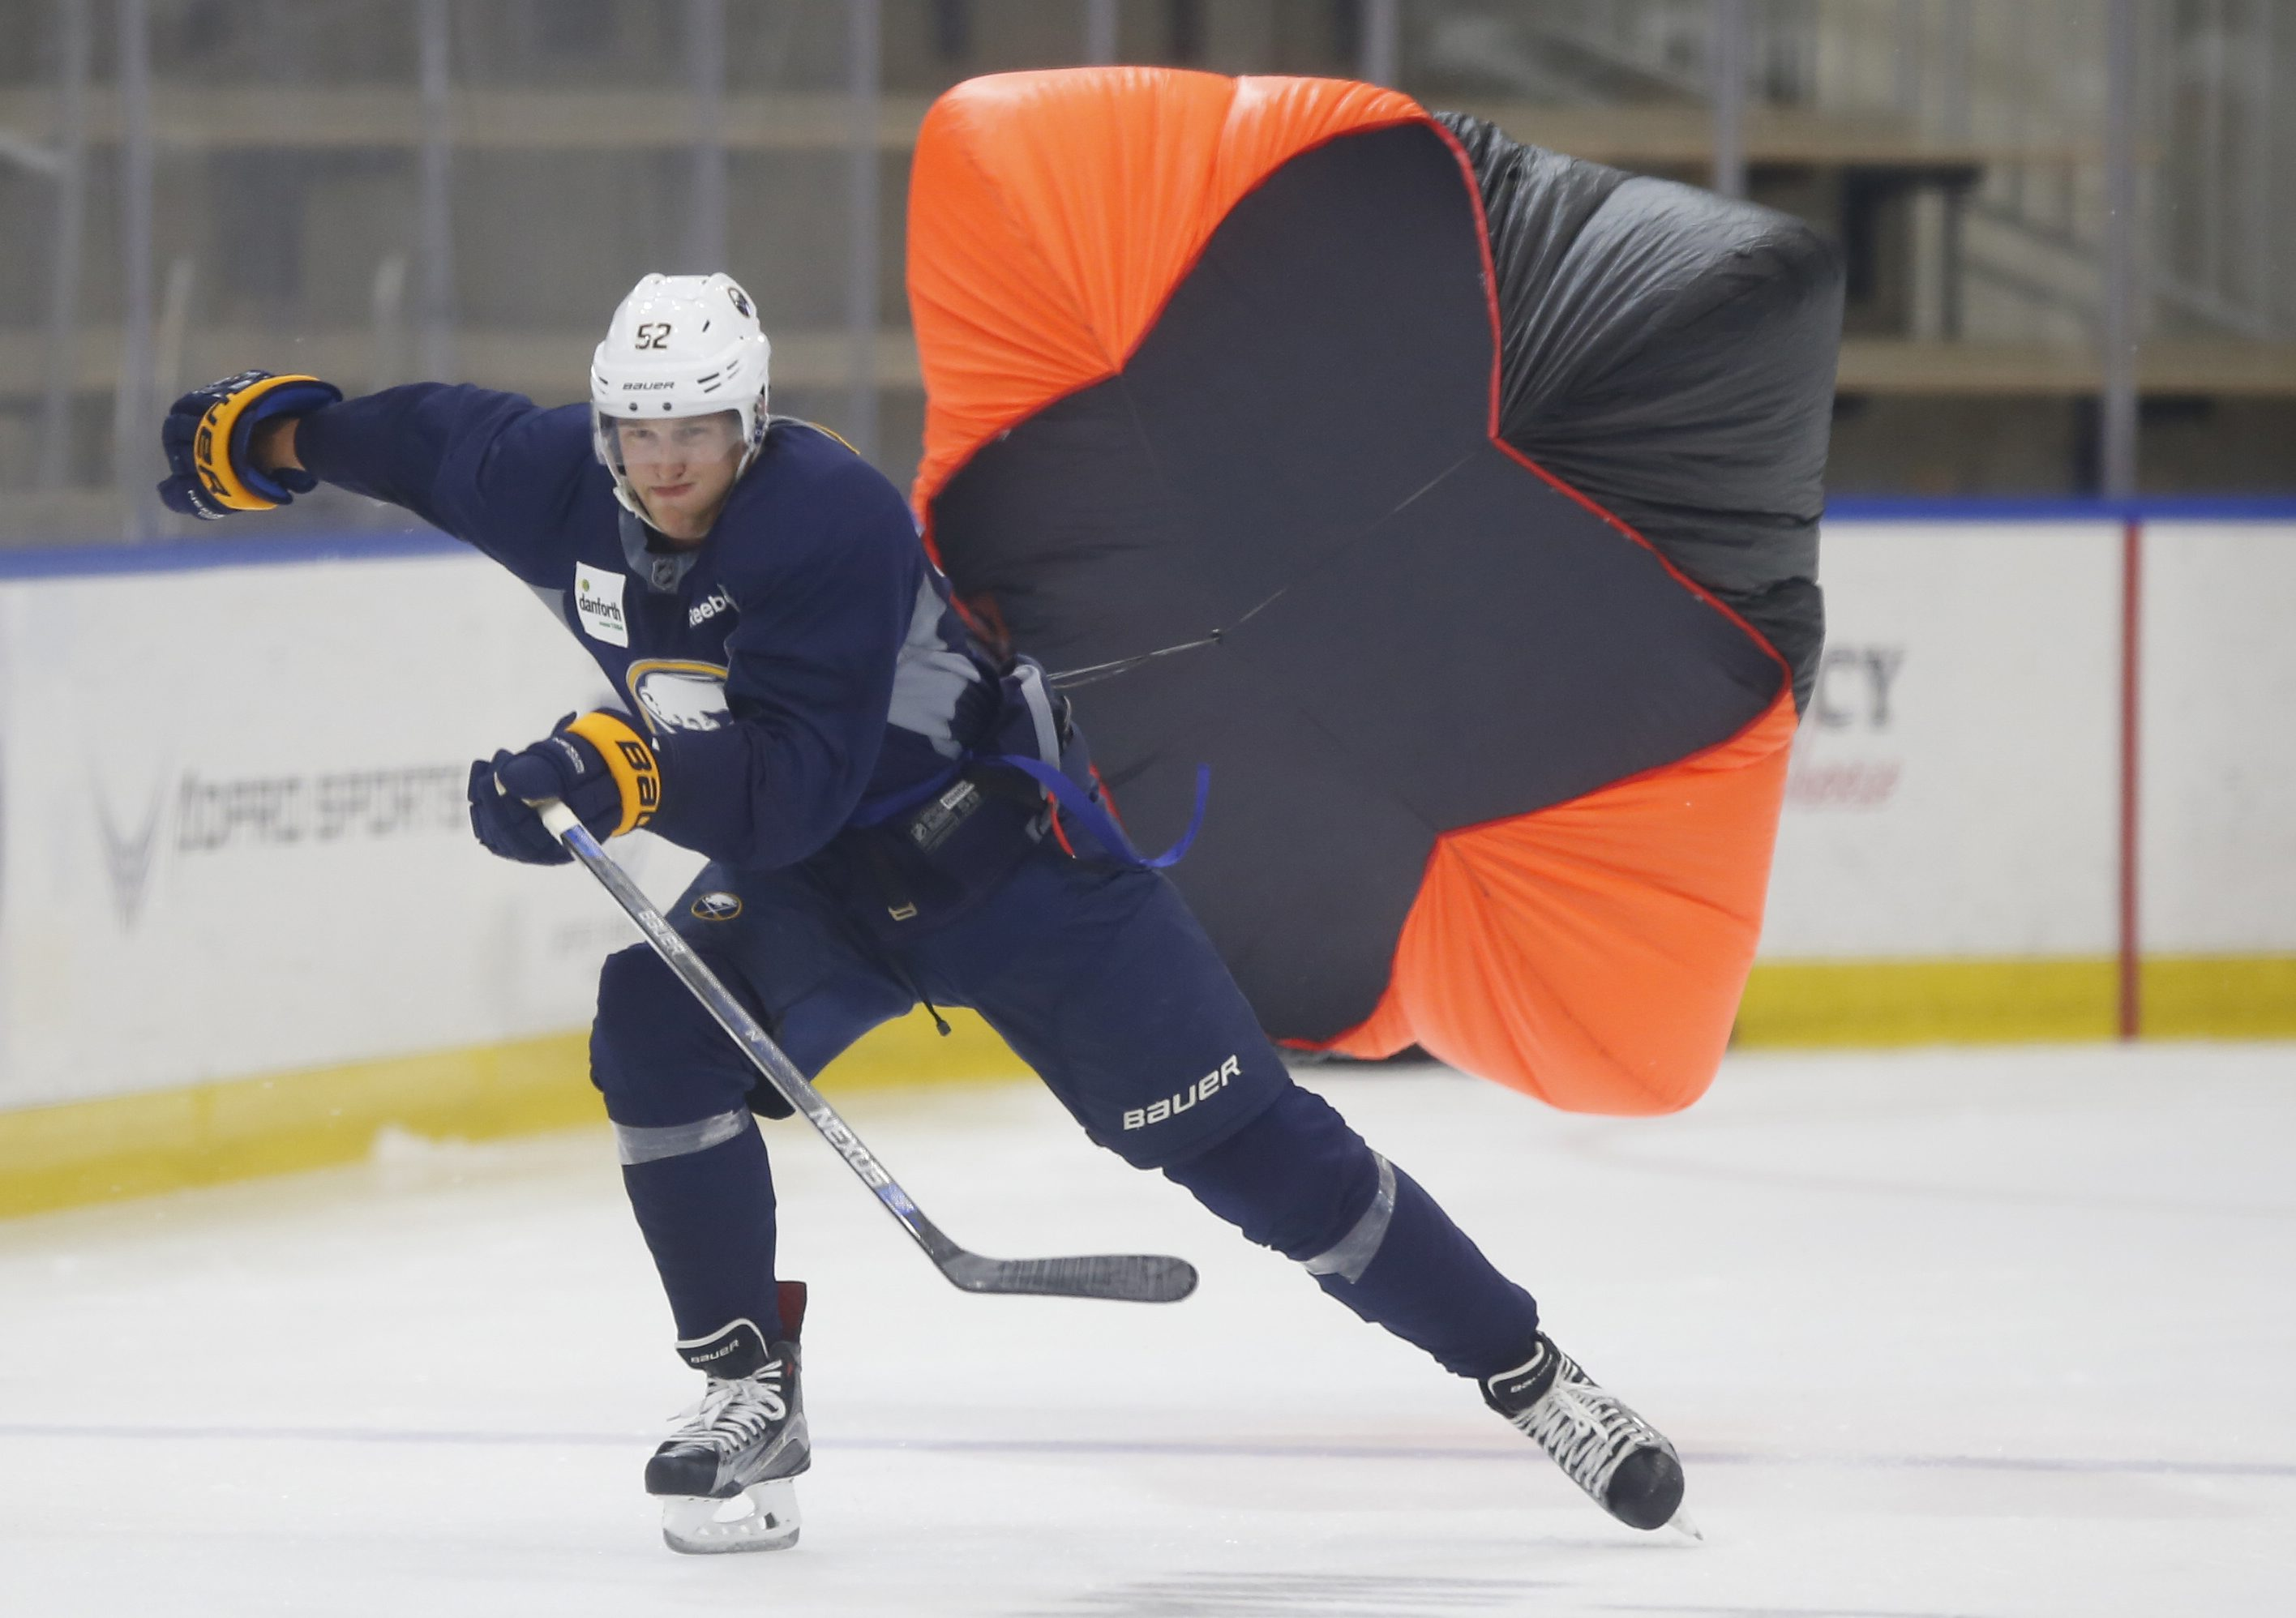 Sabres prospect Hudson Fasching participates in a parachute drill during development camp Thursday in HarborCenter. (Harry Scull Jr./Buffalo News)